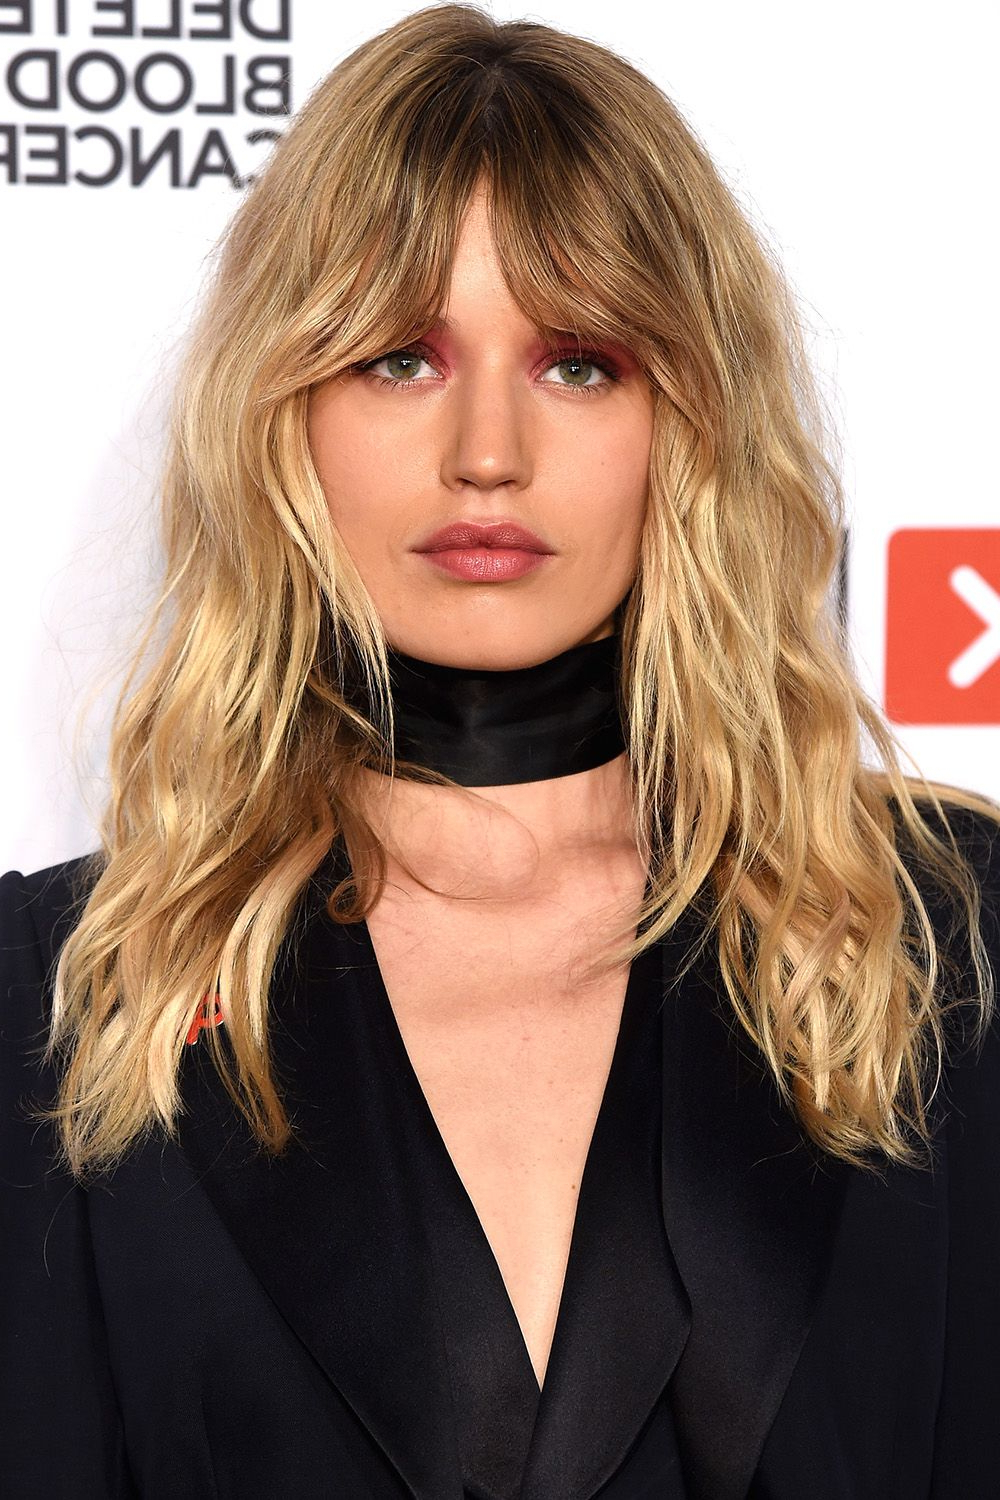 40 Best Medium Hairstyles – Celebrities With Shoulder Length Haircuts With Most Recent Long Face Medium Hairstyles (View 6 of 20)